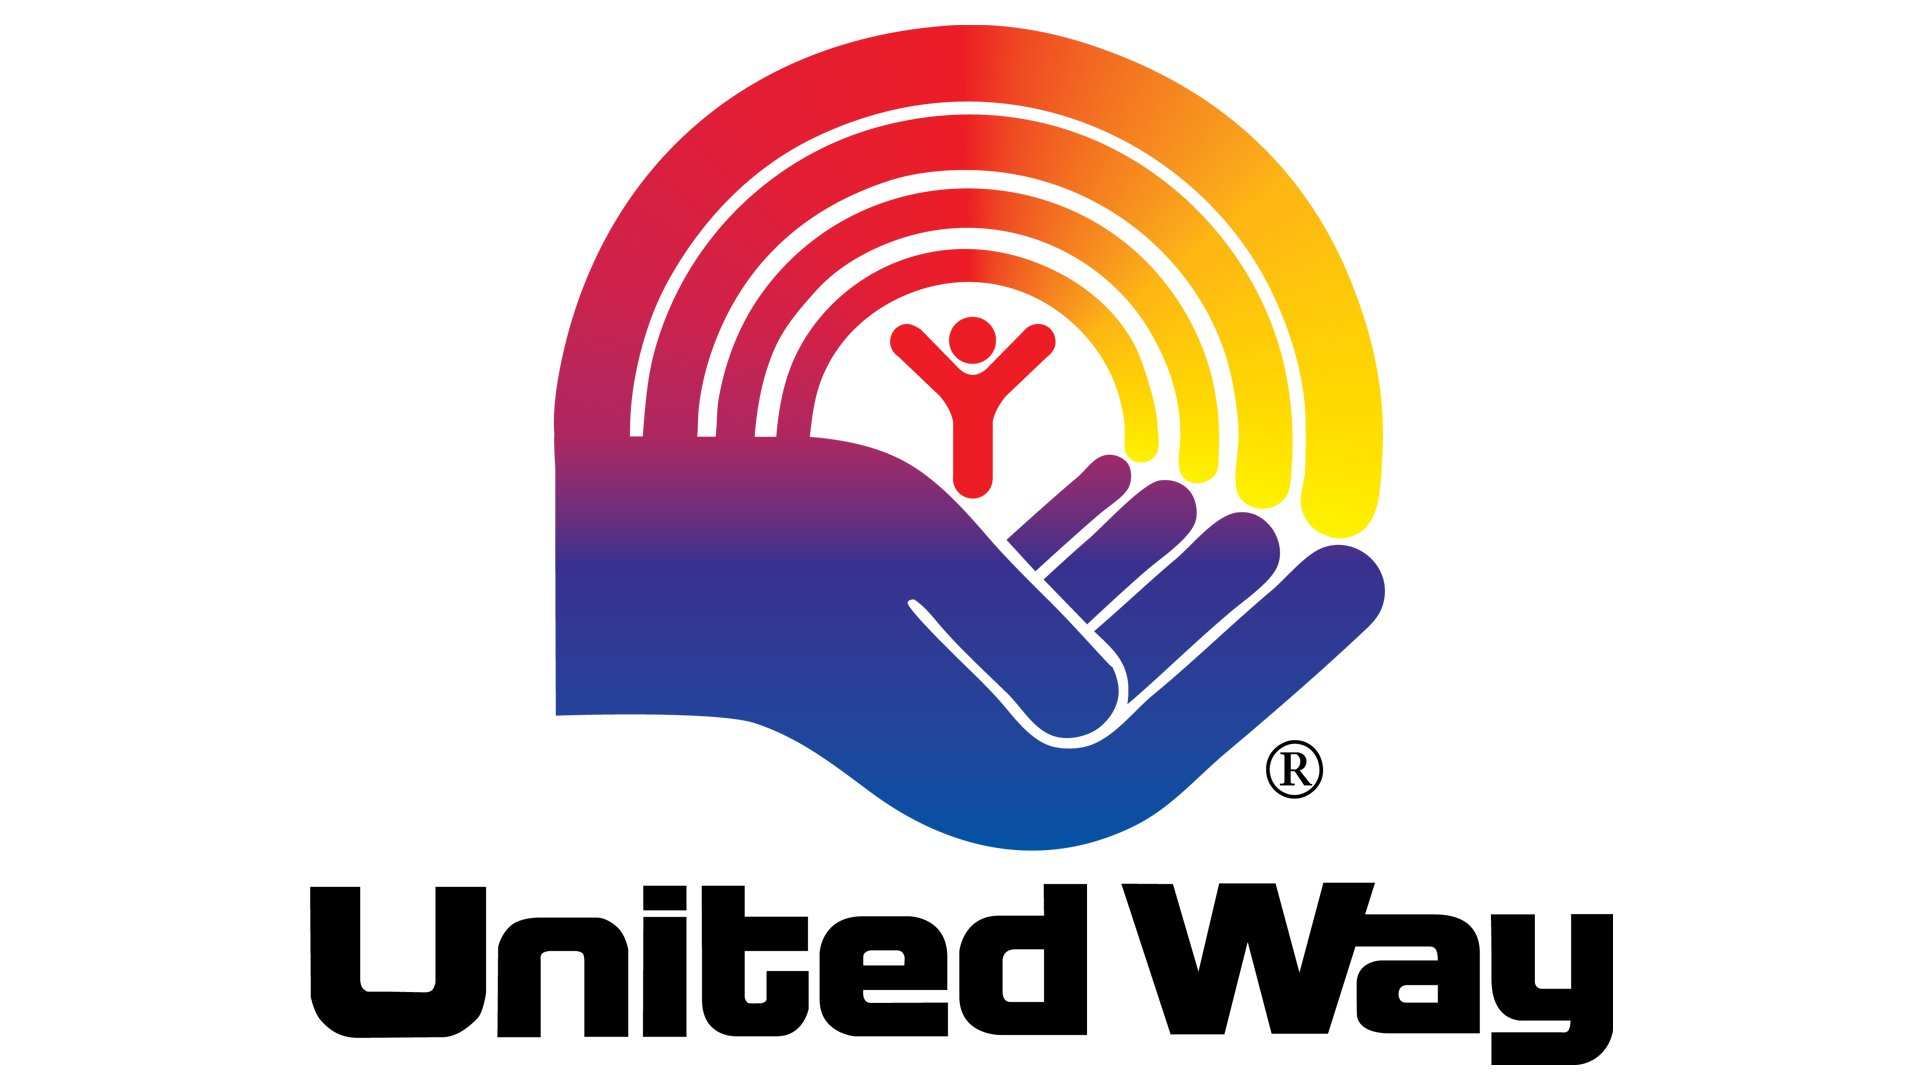 United Way Logo United Way Symbol Meaning History And Evolution